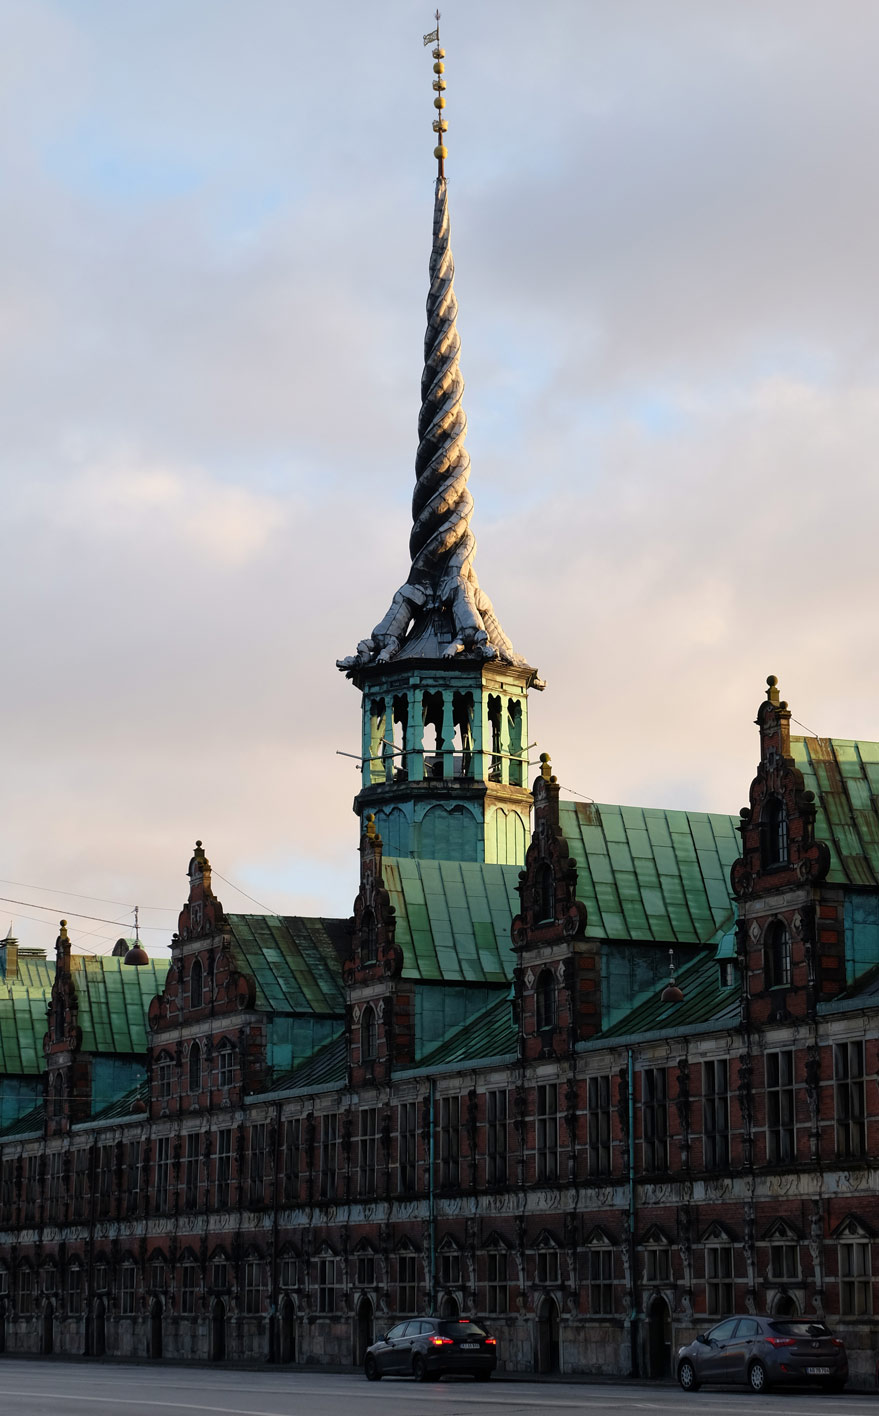 The spire at Børsen takes the form of four dragons' tails